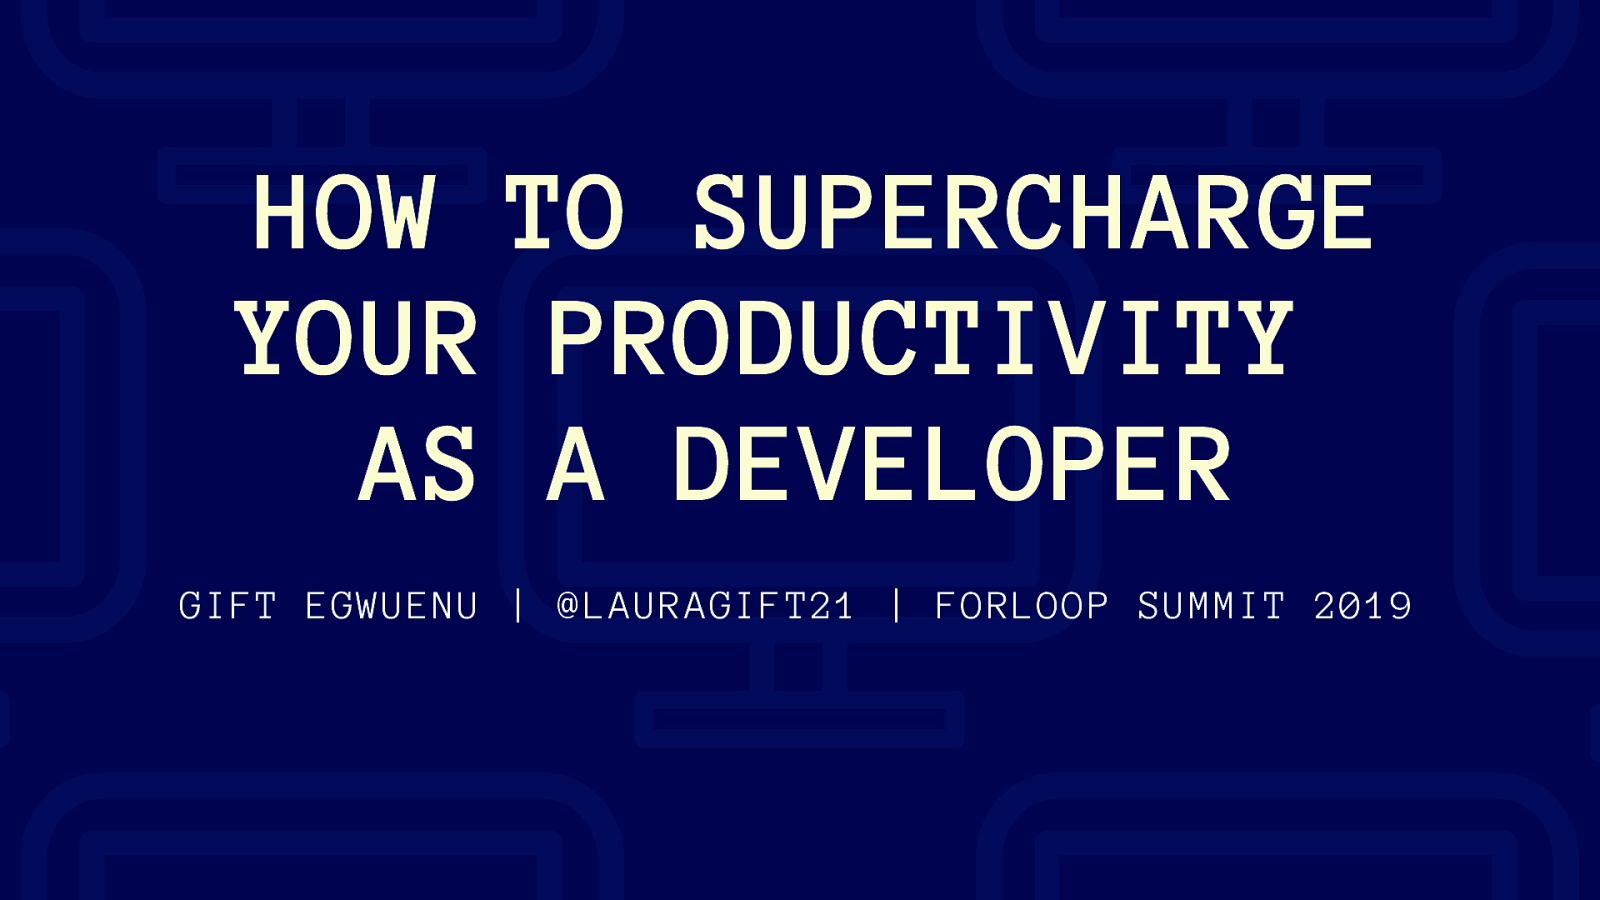 HOW TO SUPERCHARGE YOUR PRODUCTIVITY AS A DEVELOPER